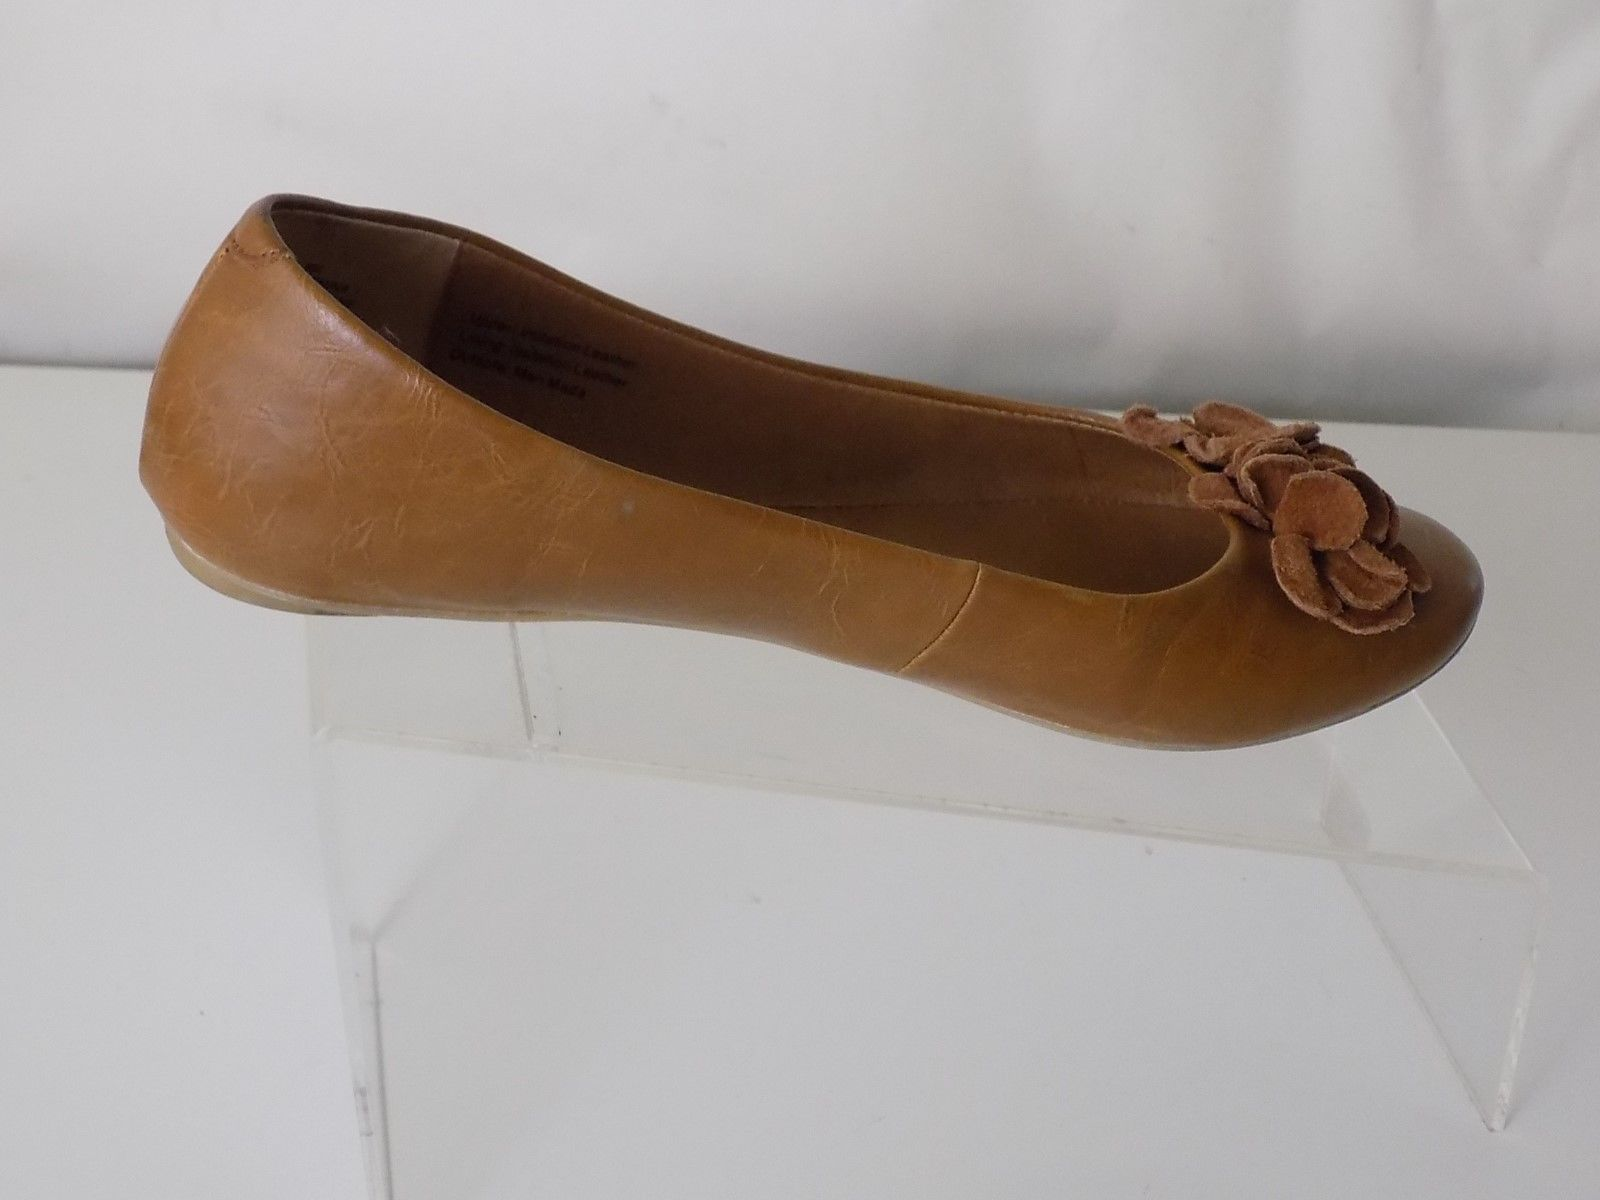 1335795aa25 S l1600. S l1600. Previous. KENNETH COLE REACTION ALL MAN MADE MATERIALS  TAN FLAT SHOES WOMENS SIZE 8 M